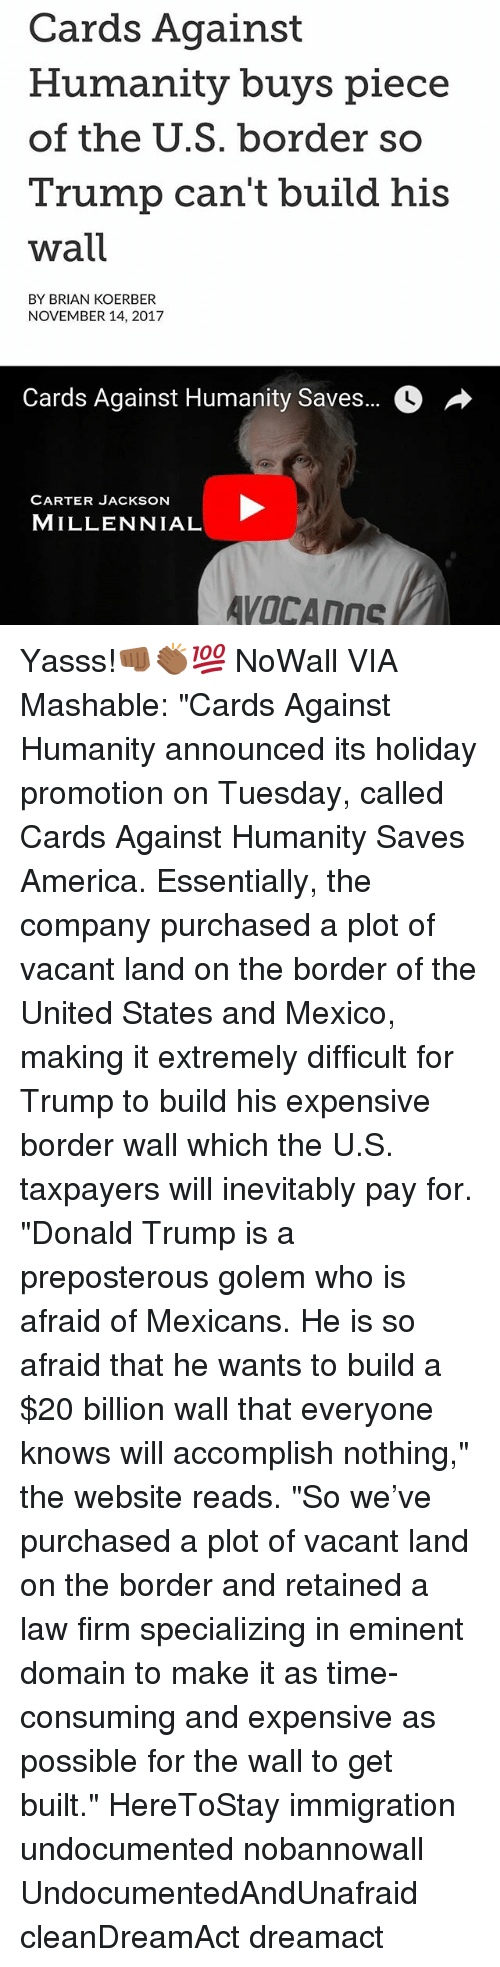 """America, Cards Against Humanity, and Donald Trump: Cards Against  Humanity buys piece  of the U.S. border so  Trump can't build his  wall  BY BRIAN KOERBER  NOVEMBER 14, 2017  Cards Against Humanity Saves..。  CARTER JACKSON  MILLENNIAL Yasss!👊🏾👏🏾💯 NoWall VIA Mashable: """"Cards Against Humanity announced its holiday promotion on Tuesday, called Cards Against Humanity Saves America. Essentially, the company purchased a plot of vacant land on the border of the United States and Mexico, making it extremely difficult for Trump to build his expensive border wall which the U.S. taxpayers will inevitably pay for. """"Donald Trump is a preposterous golem who is afraid of Mexicans. He is so afraid that he wants to build a $20 billion wall that everyone knows will accomplish nothing,"""" the website reads. """"So we've purchased a plot of vacant land on the border and retained a law firm specializing in eminent domain to make it as time-consuming and expensive as possible for the wall to get built."""" HereToStay immigration undocumented nobannowall UndocumentedAndUnafraid cleanDreamAct dreamact"""